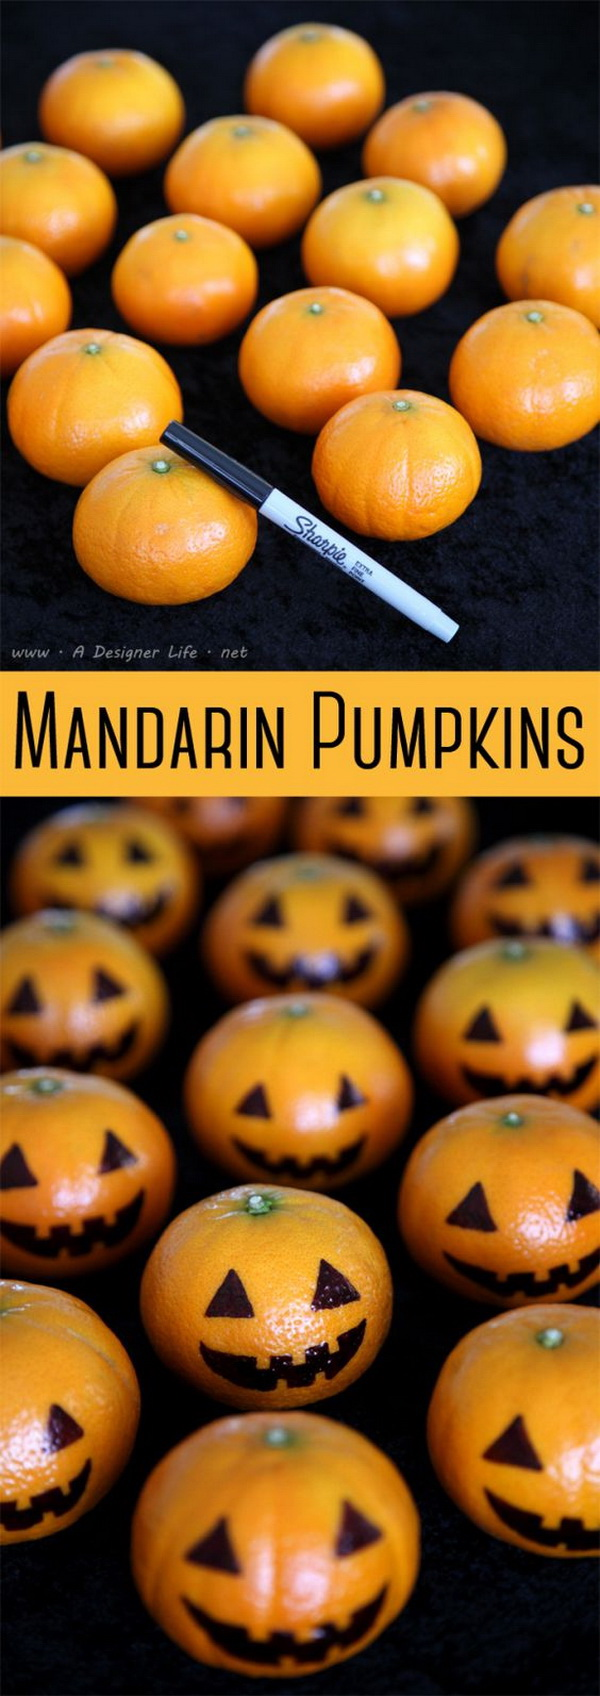 Mandarin Pumpkin Halloween Fruit.